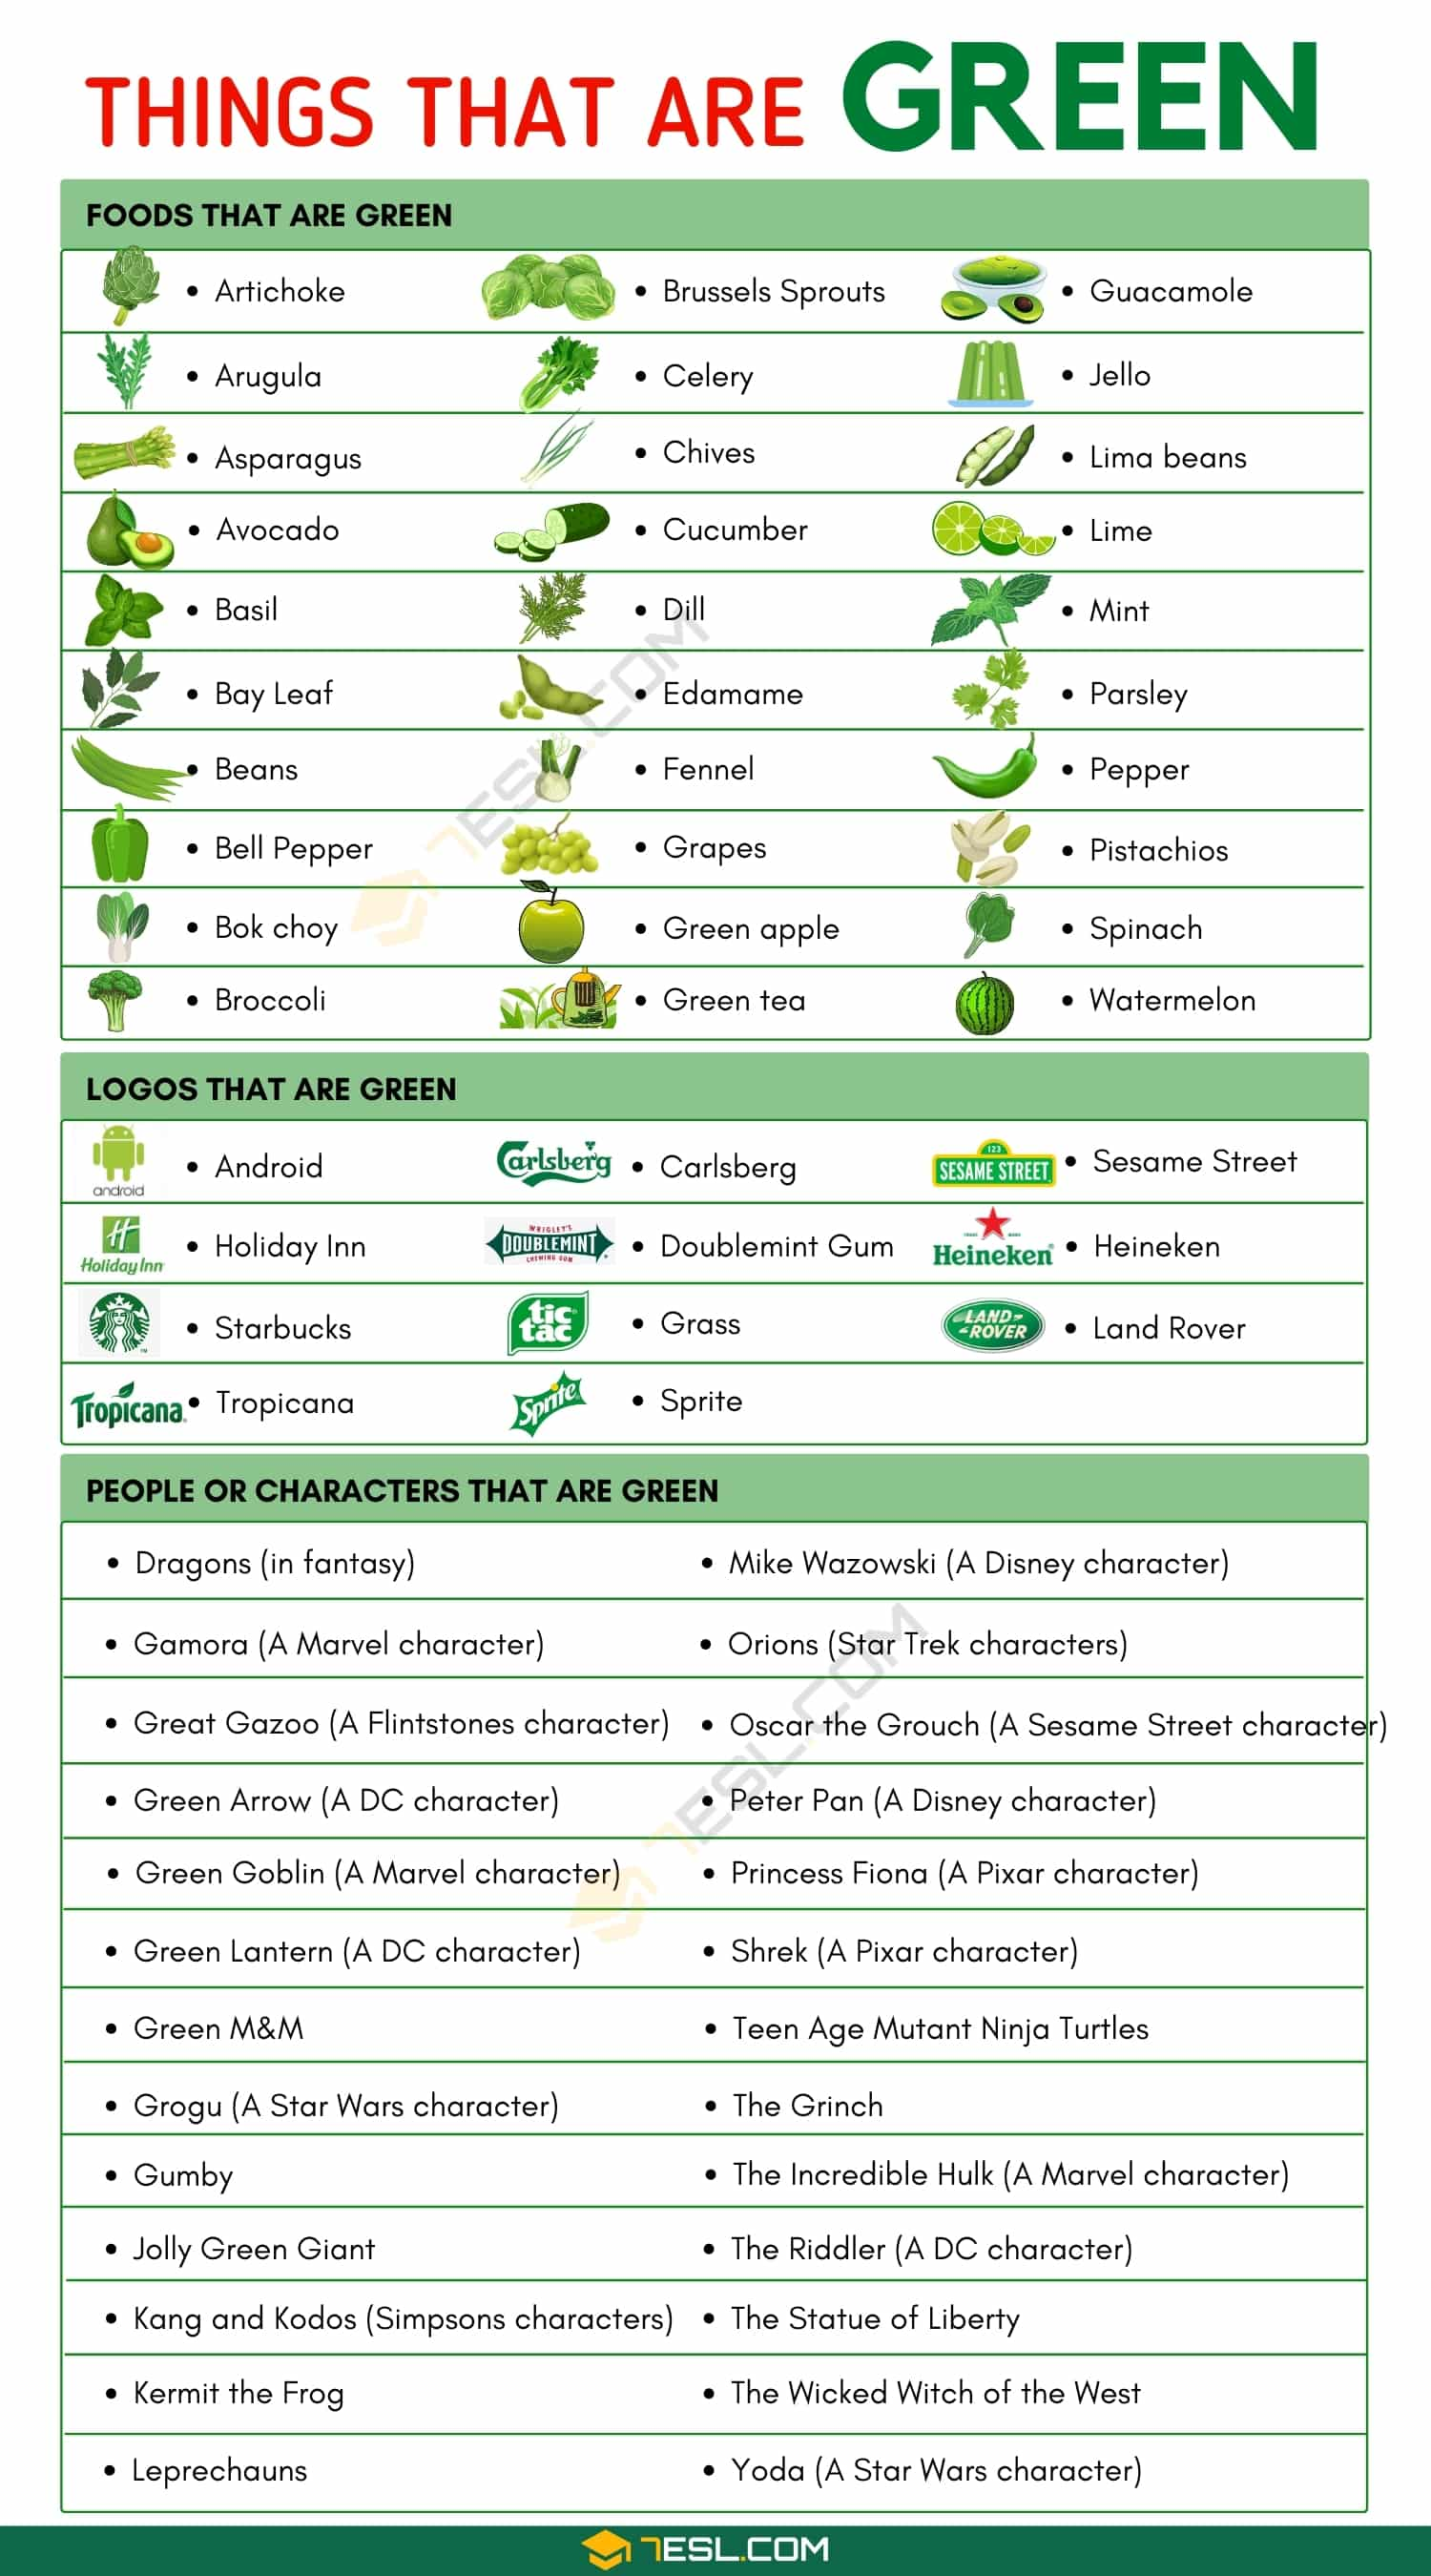 Things that are Green: List of 160+ Things that Have Green Color